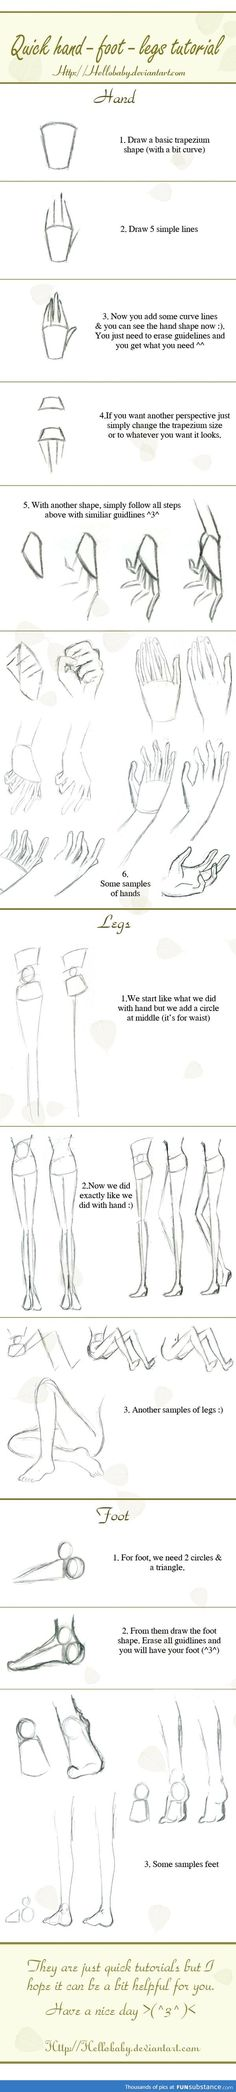 A quick hand-legs-foot drawing tutorial